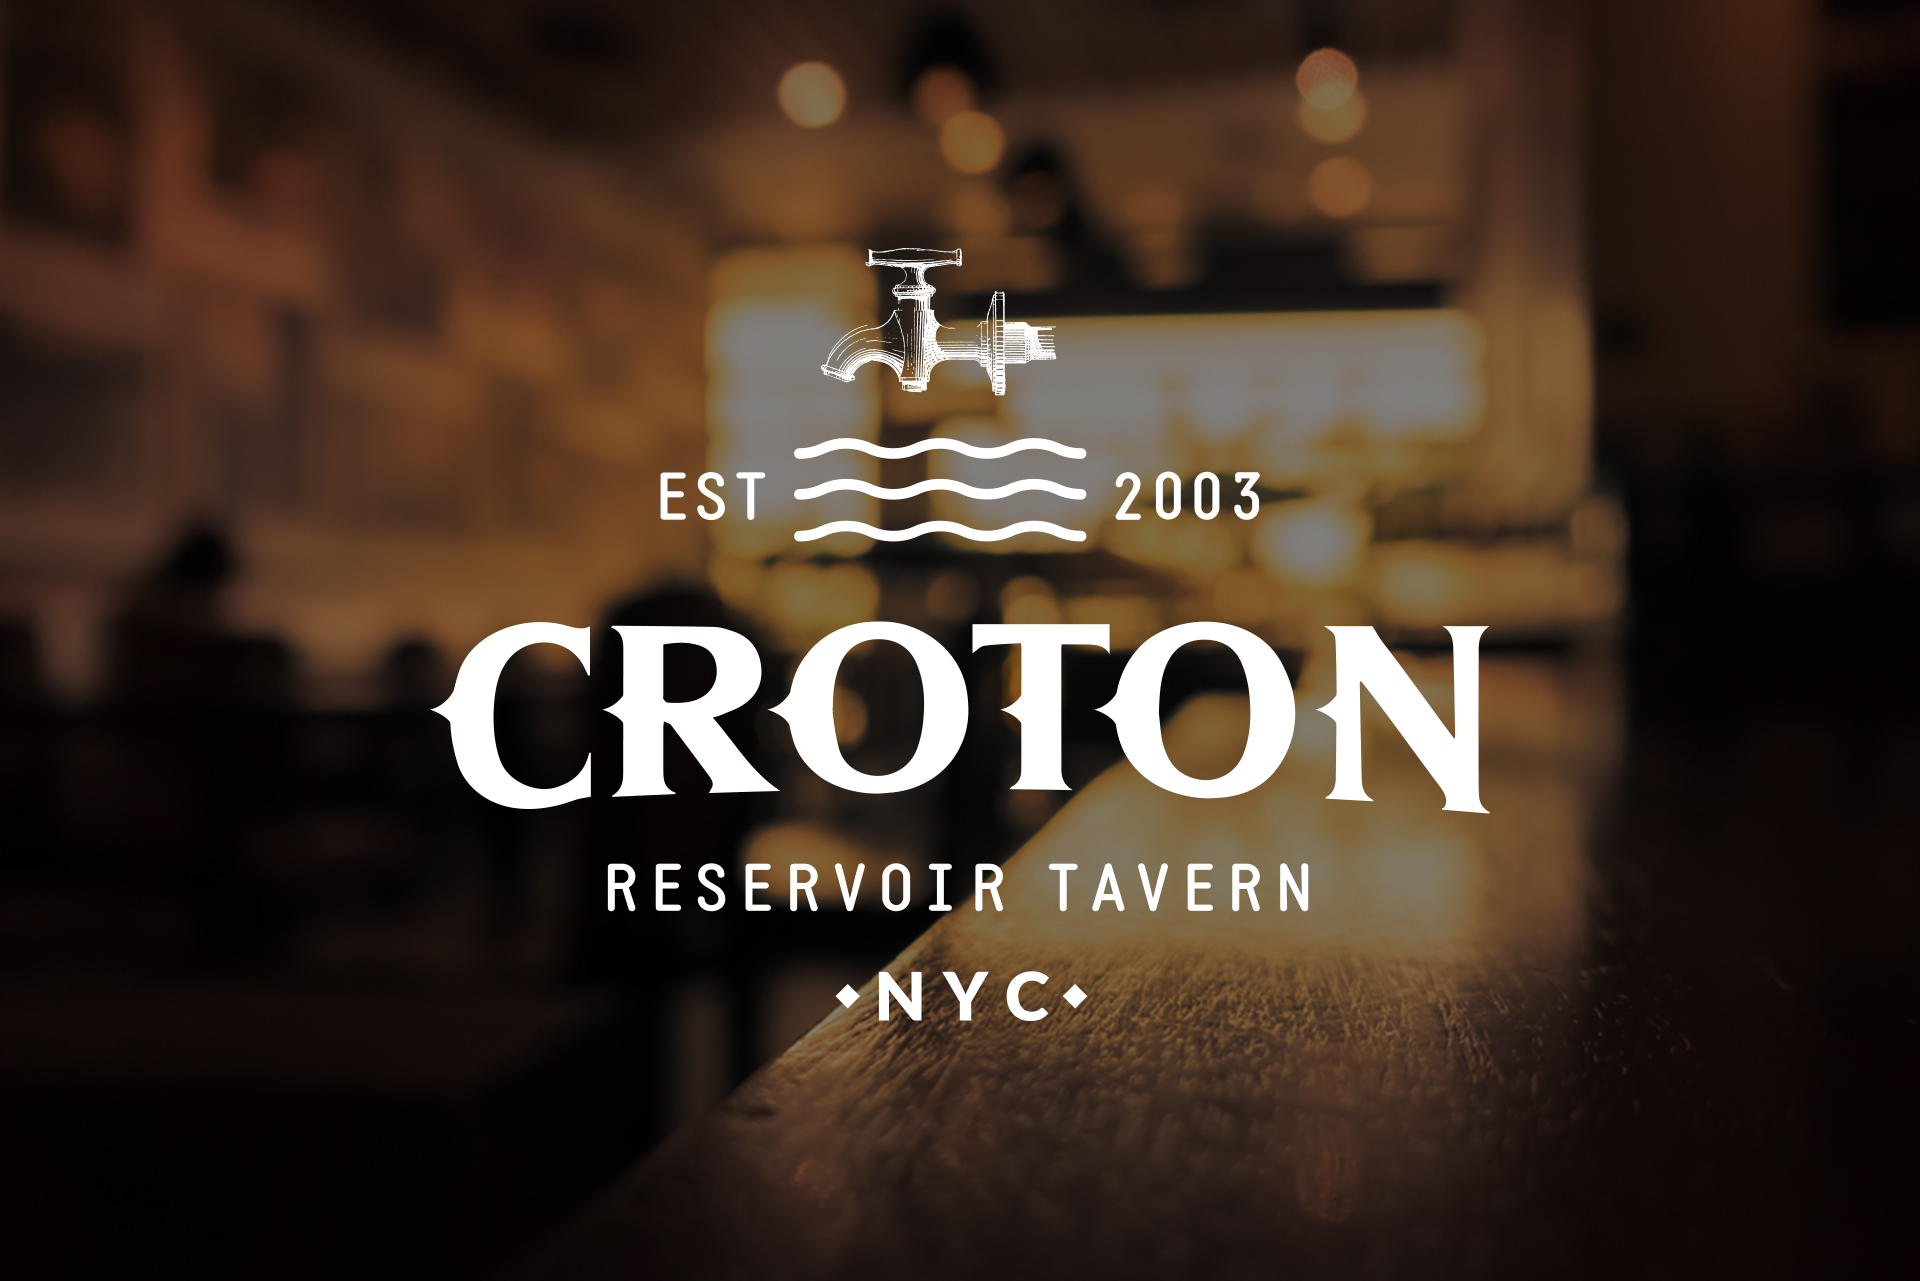 logo design for croton reservoir tavern